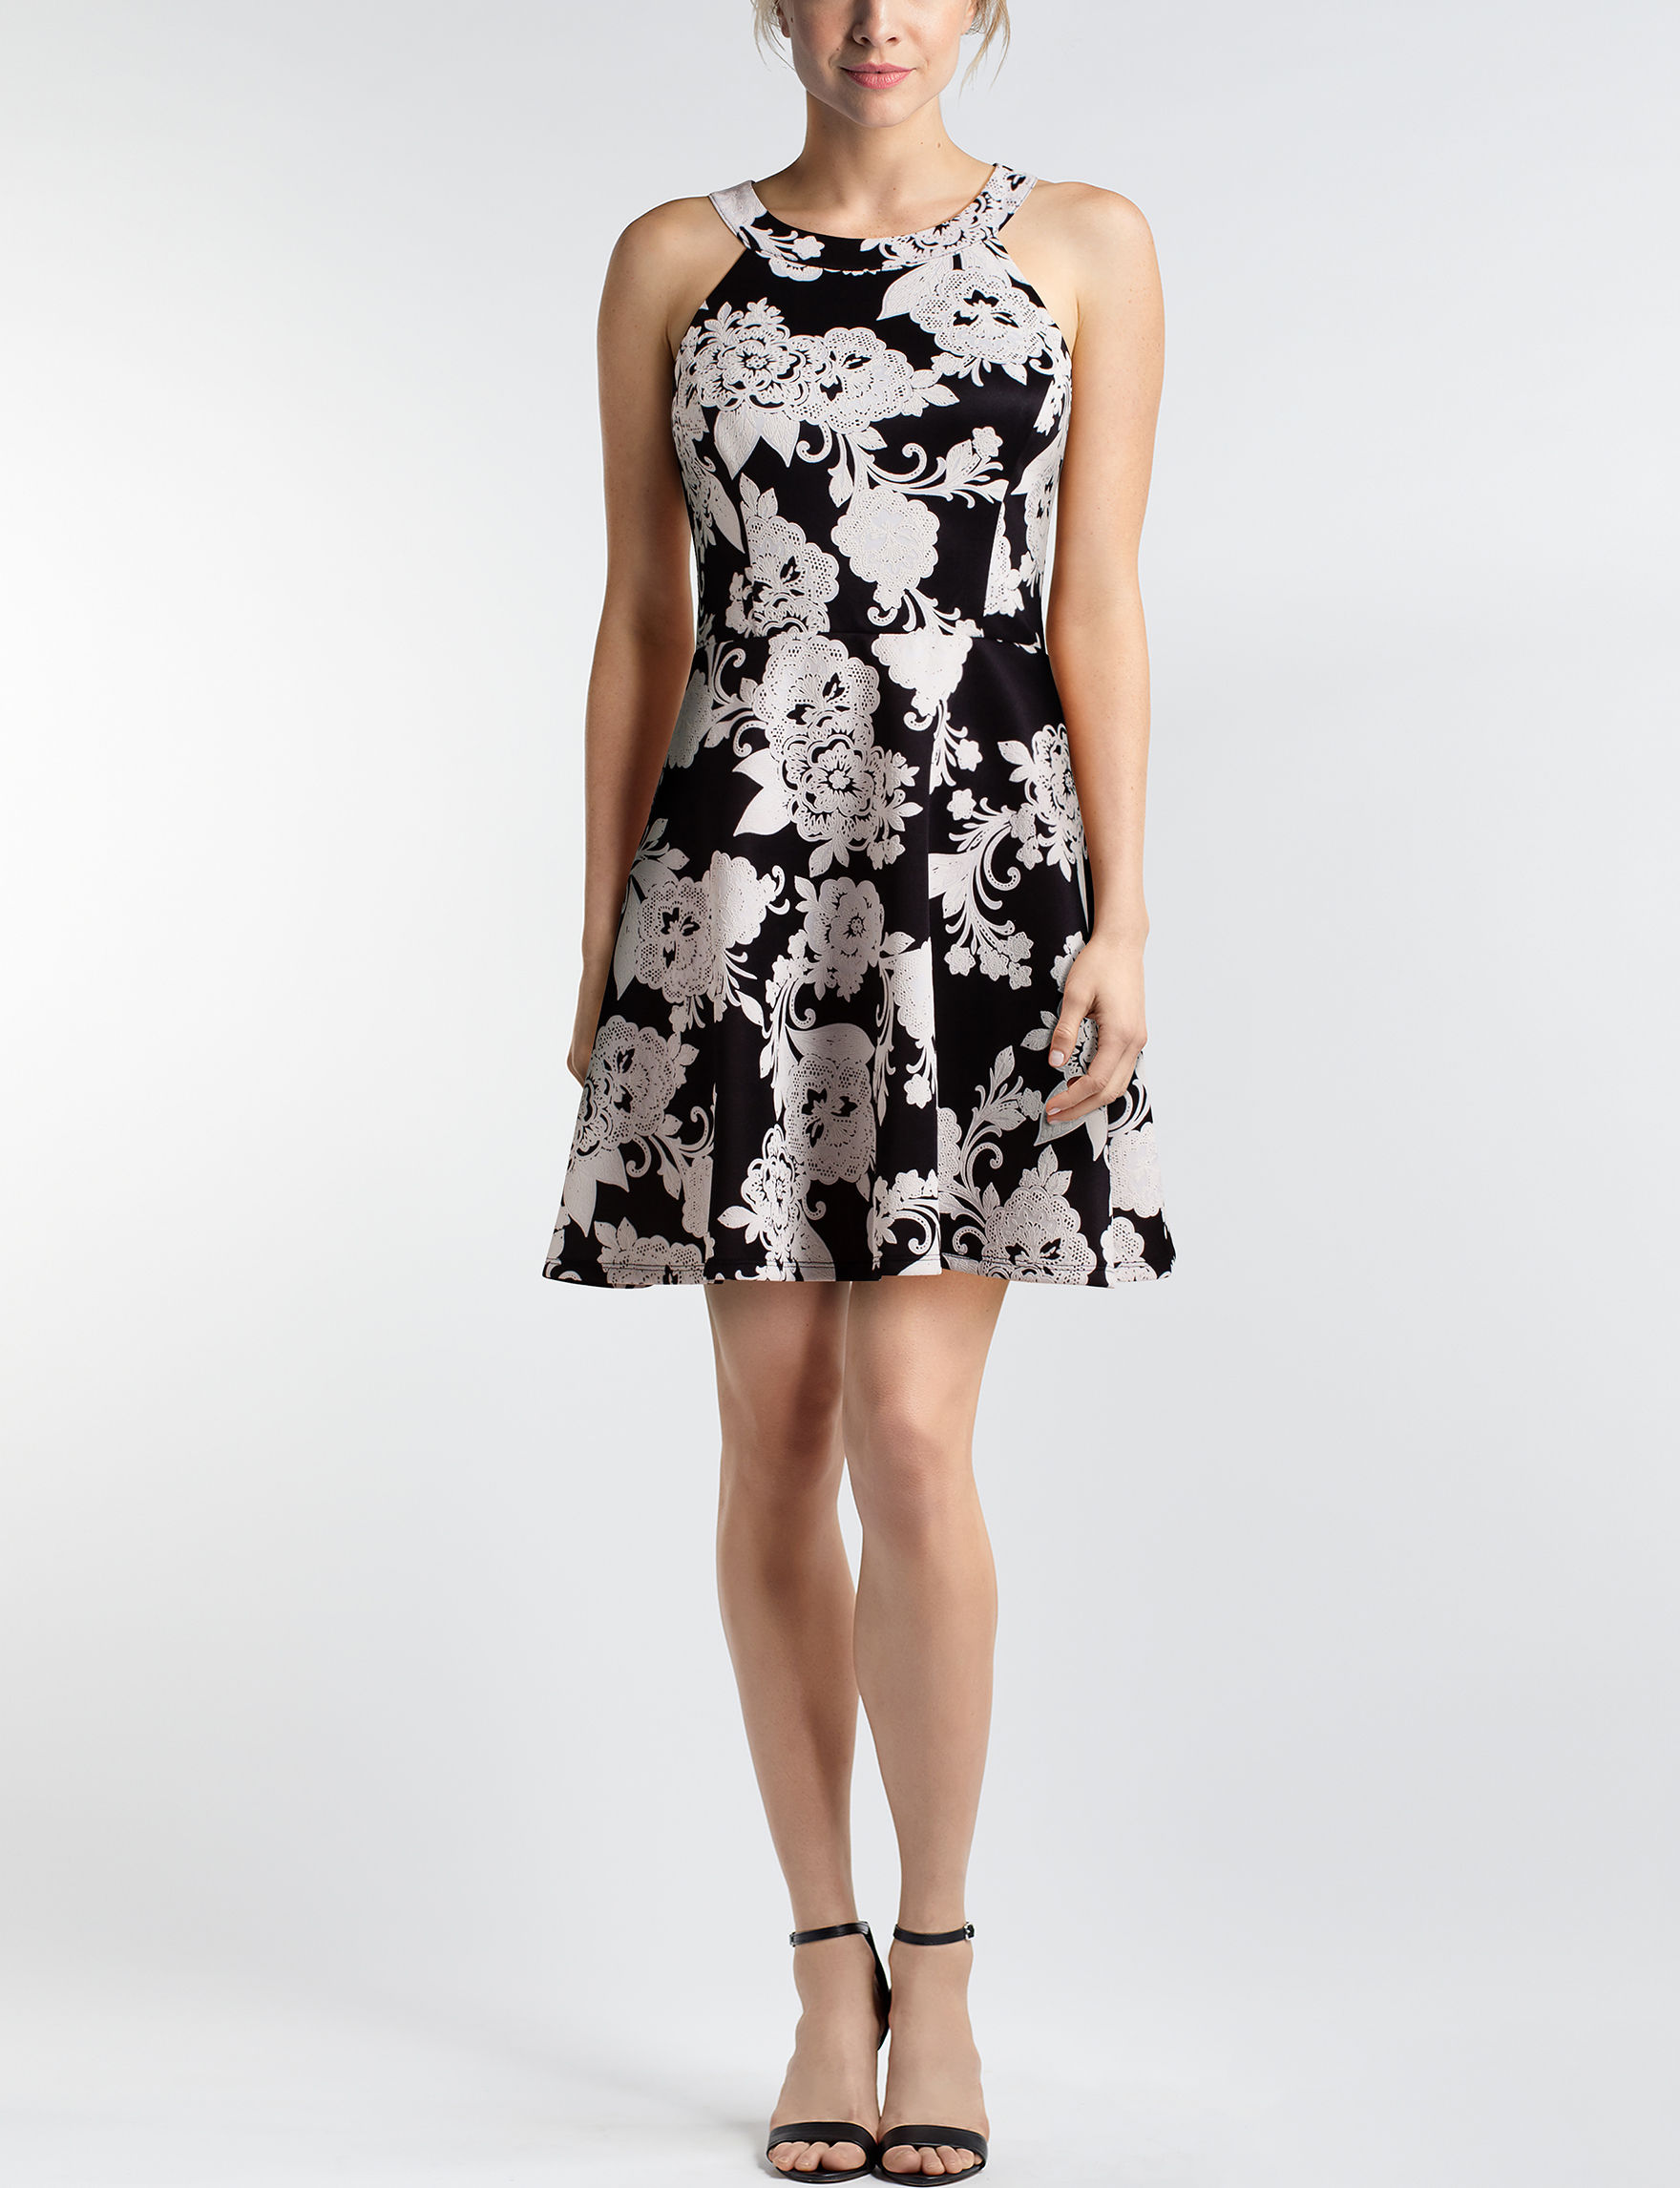 Trixxi Black / White Fit & Flare Dresses